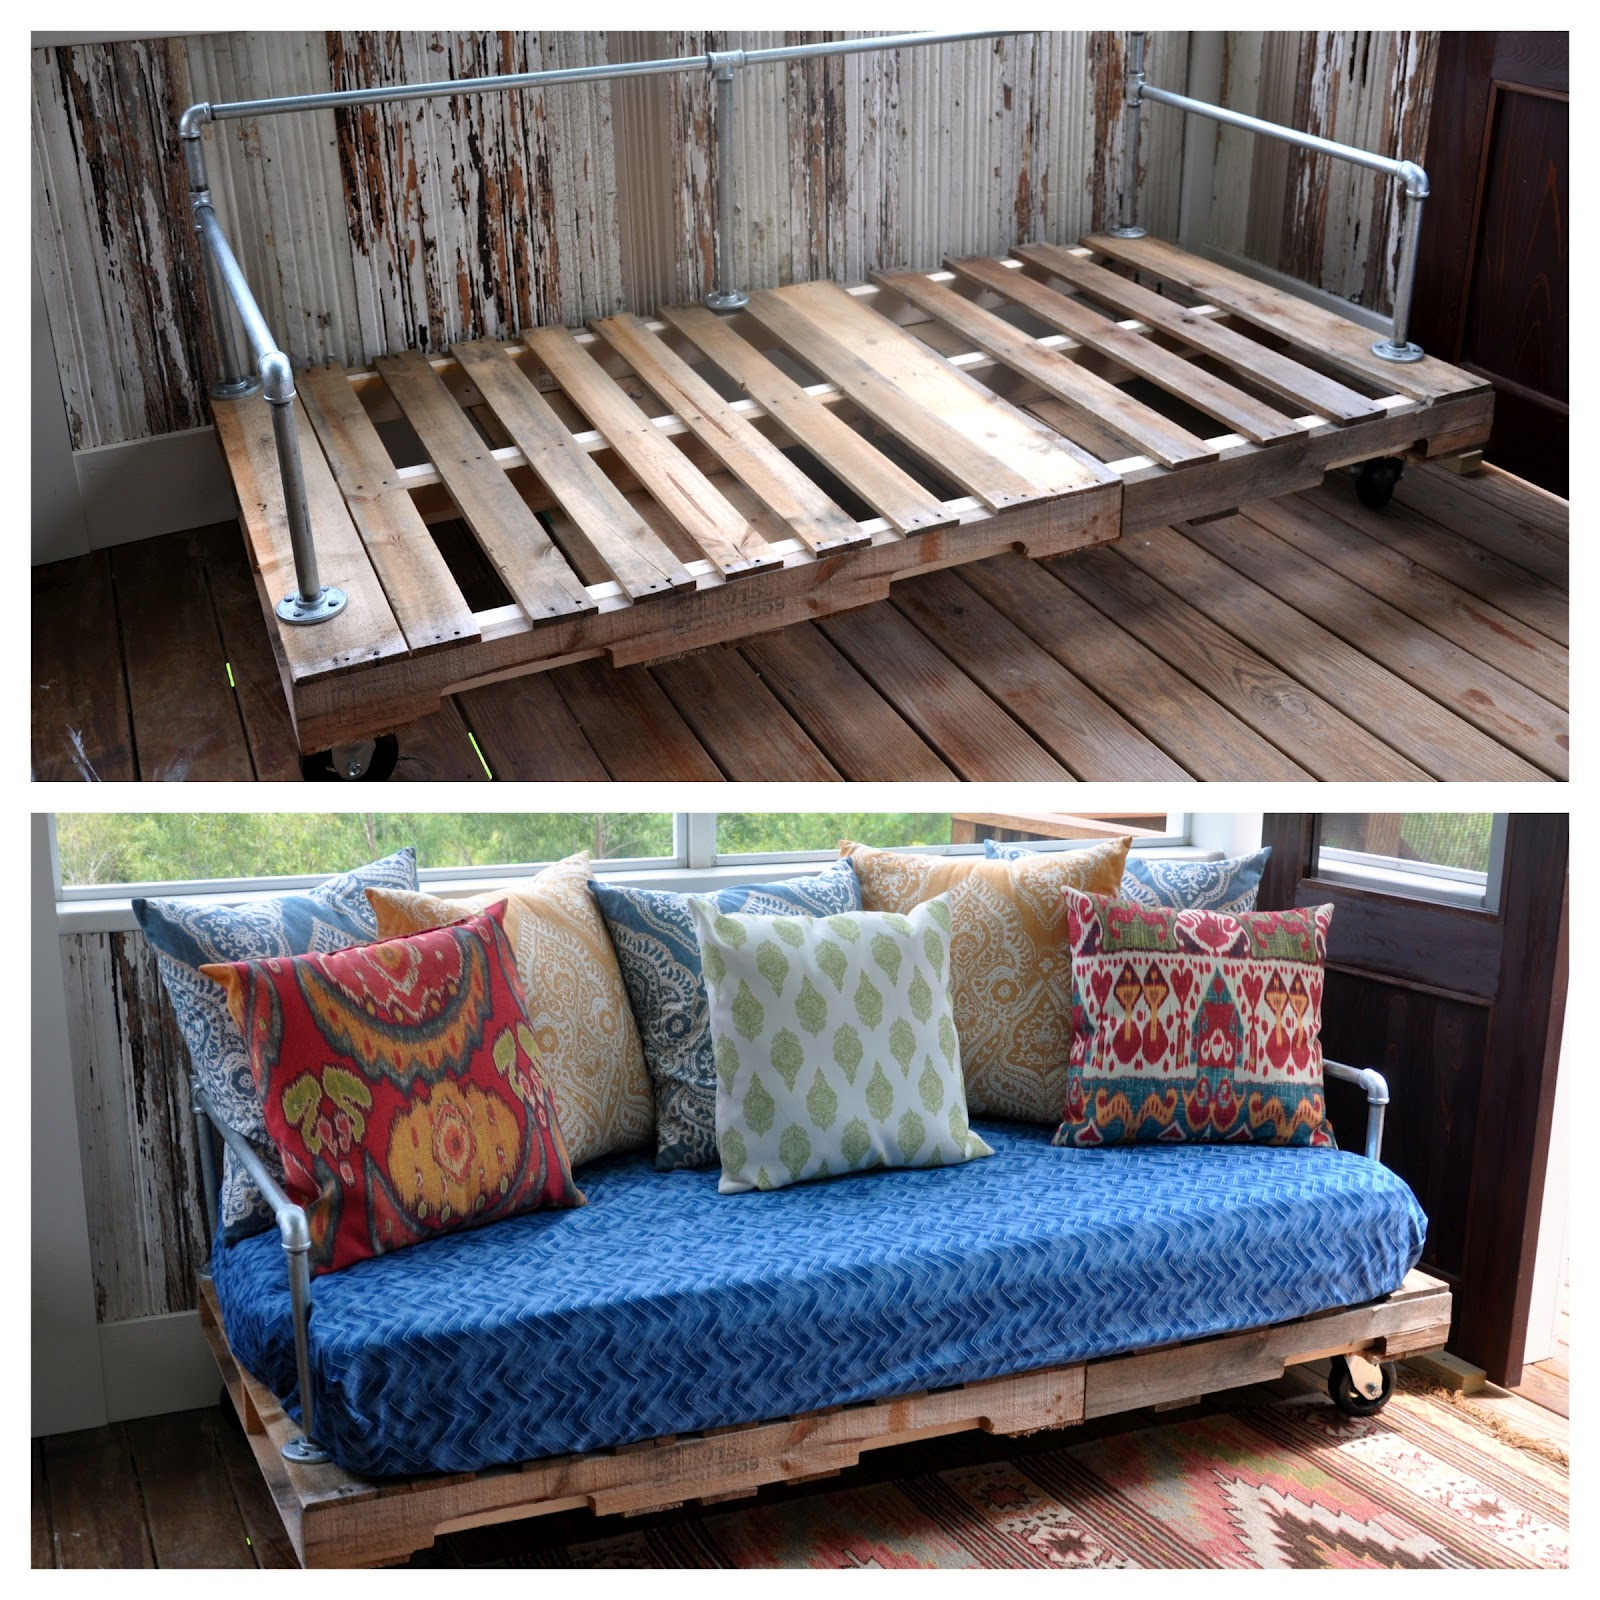 My First Pinterest Project Pallet Couch │fishsmith3 S Blog